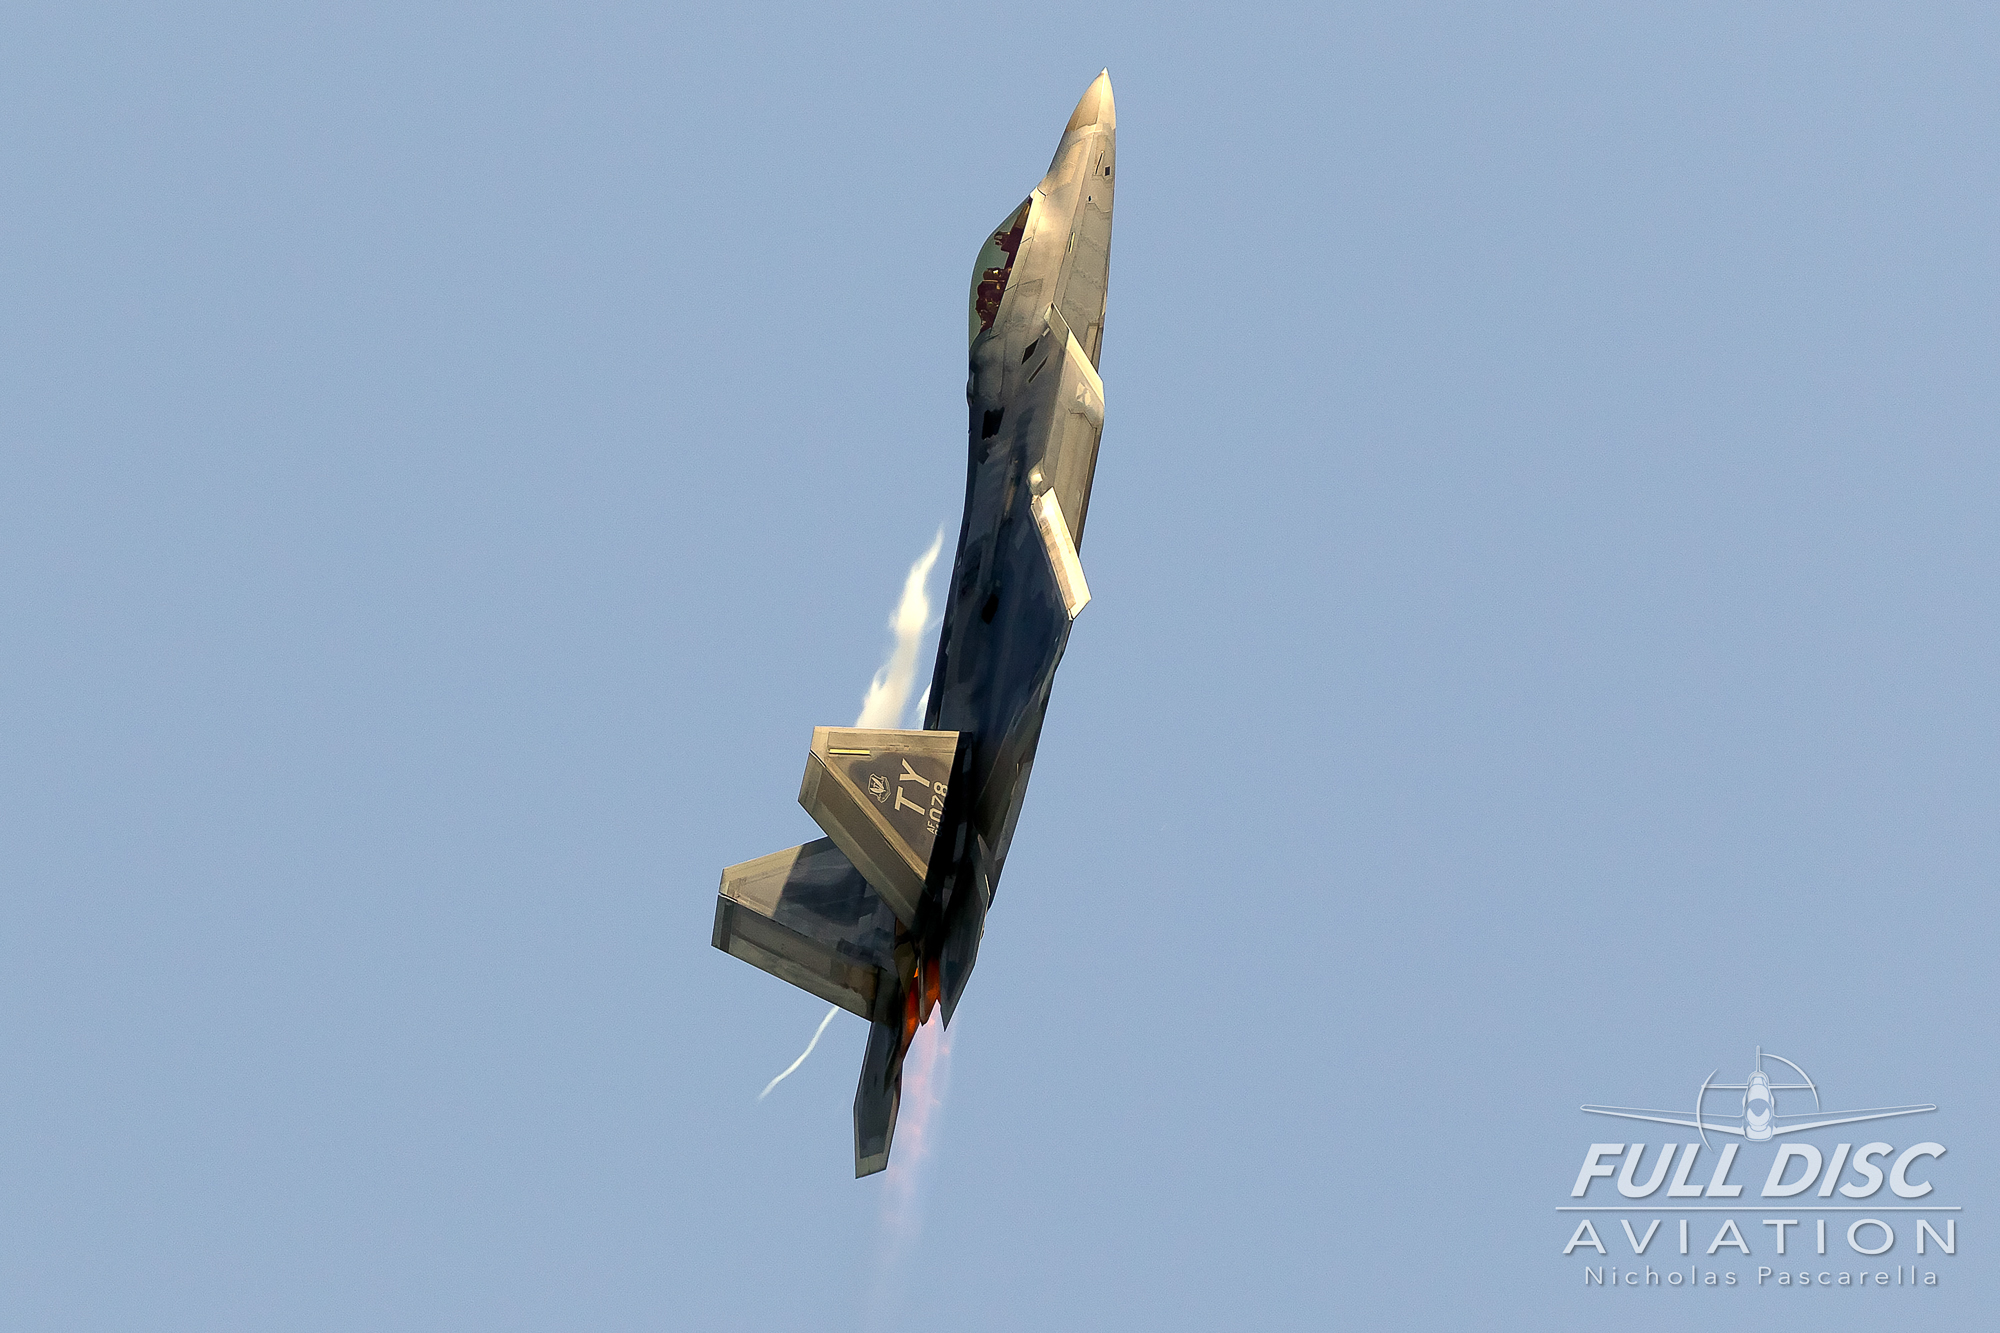 raptor_f22_mcasbeaufort_vertical_nicholaspascarella_fulldiscavation_aviation_airshow.jpg